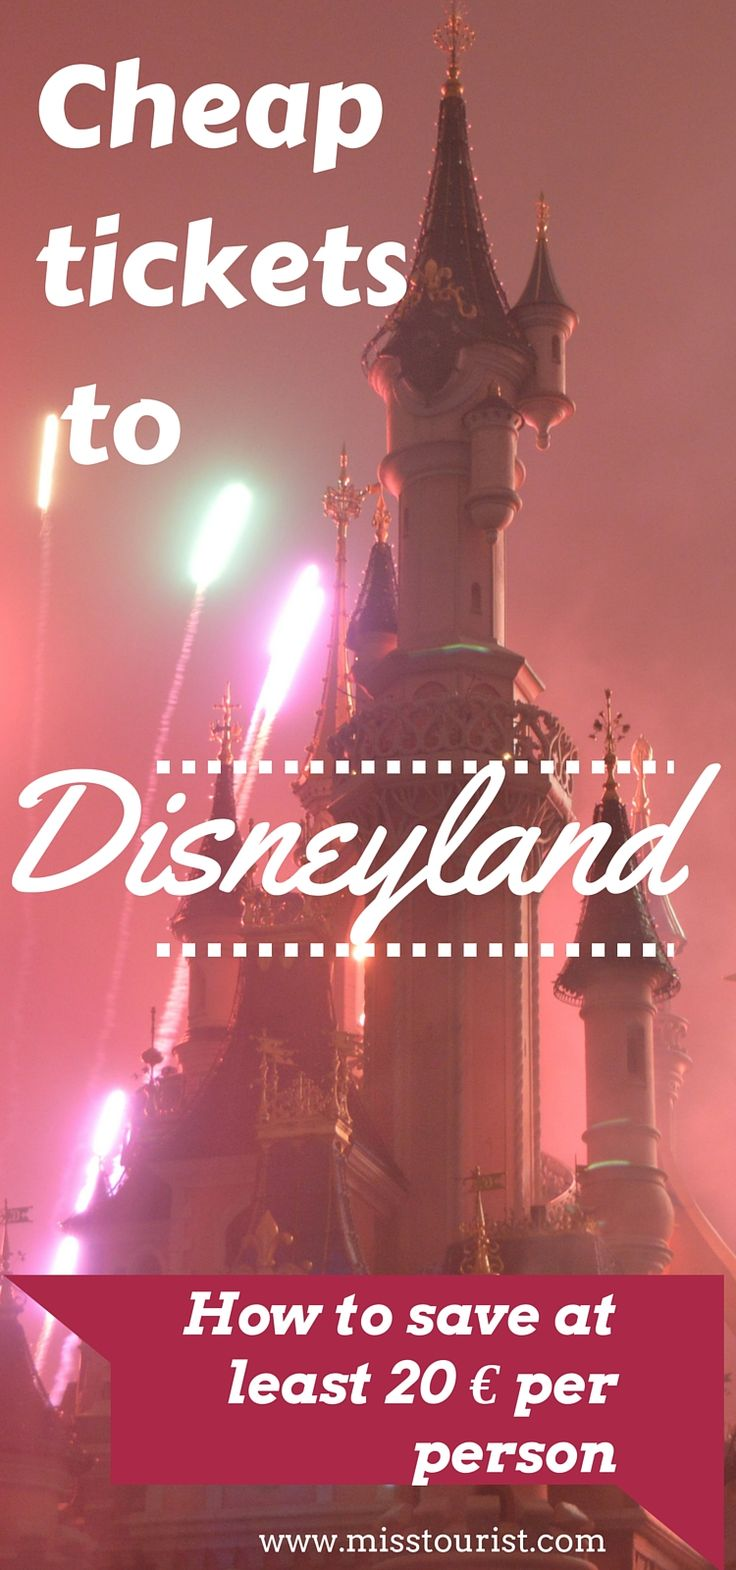 Cheap tickets to Disneyland, Paris - how to save at least 20€ per person http://misstourist.com/buy-cheap-tickets-disneyland-pari